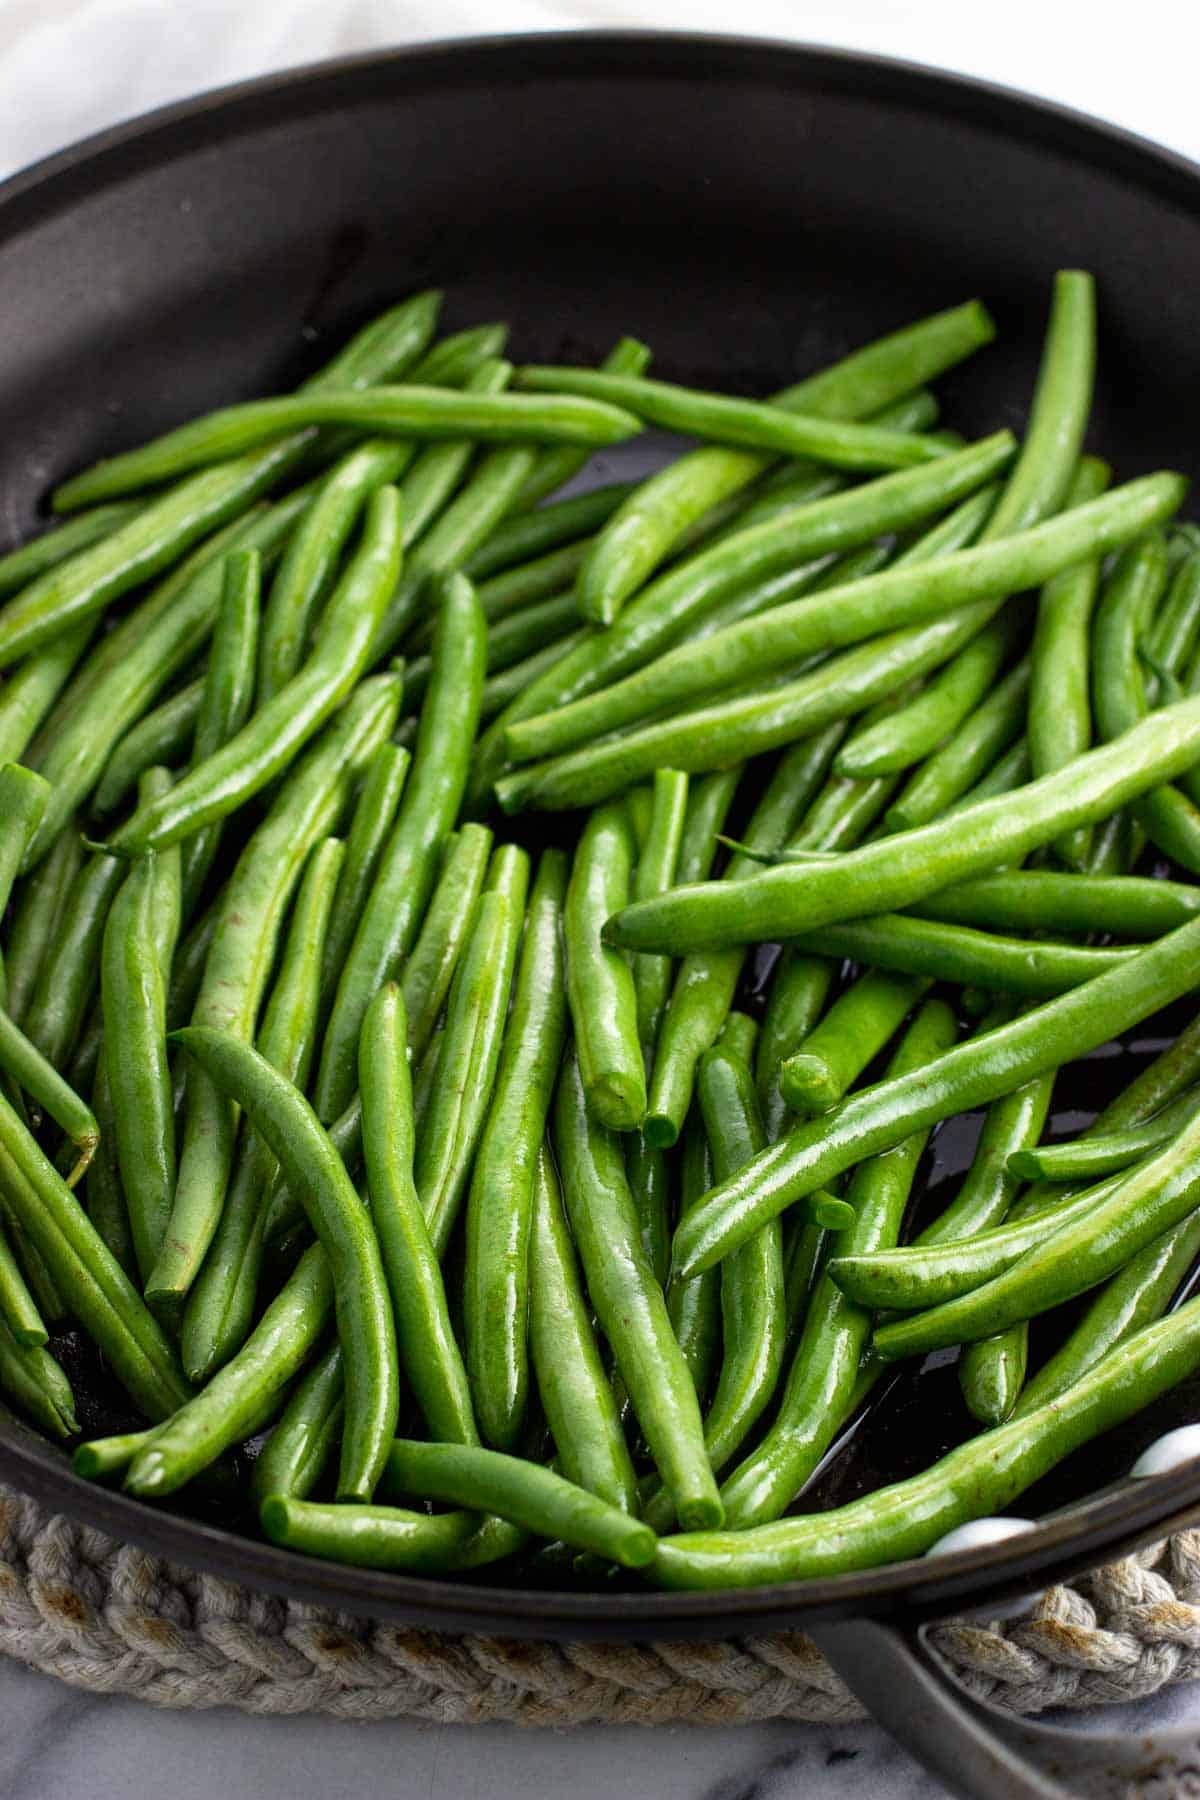 Green beans coated in olive oil in a pan.